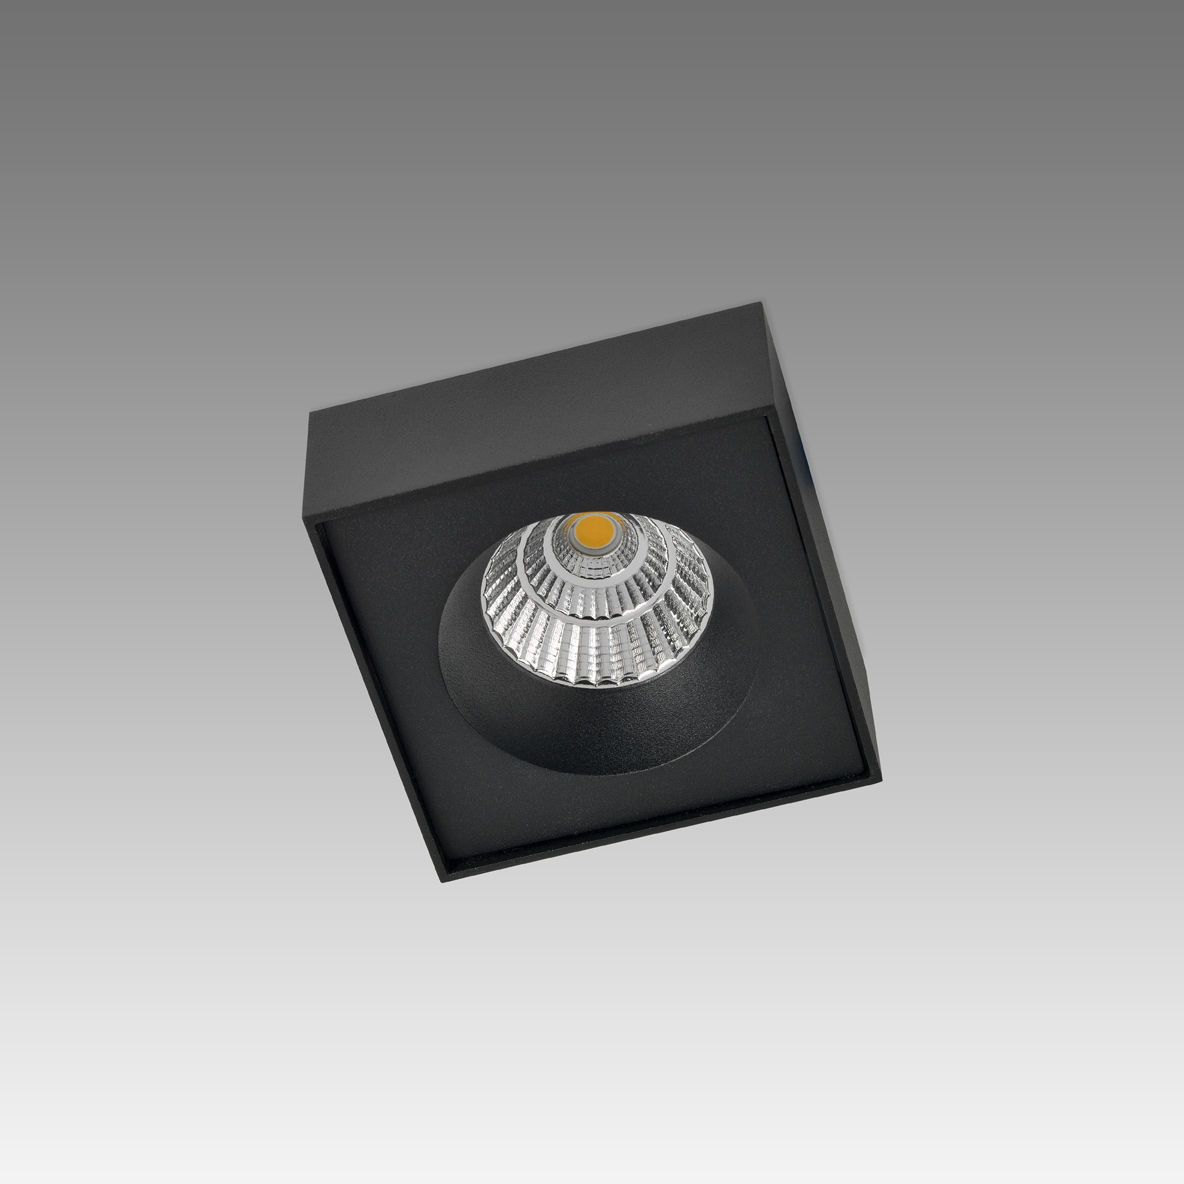 Ceiling-mounted spotlight / indoor / LED / metal - CONE SQUARE HALF ... for Ceiling Spot Light Square  193tgx